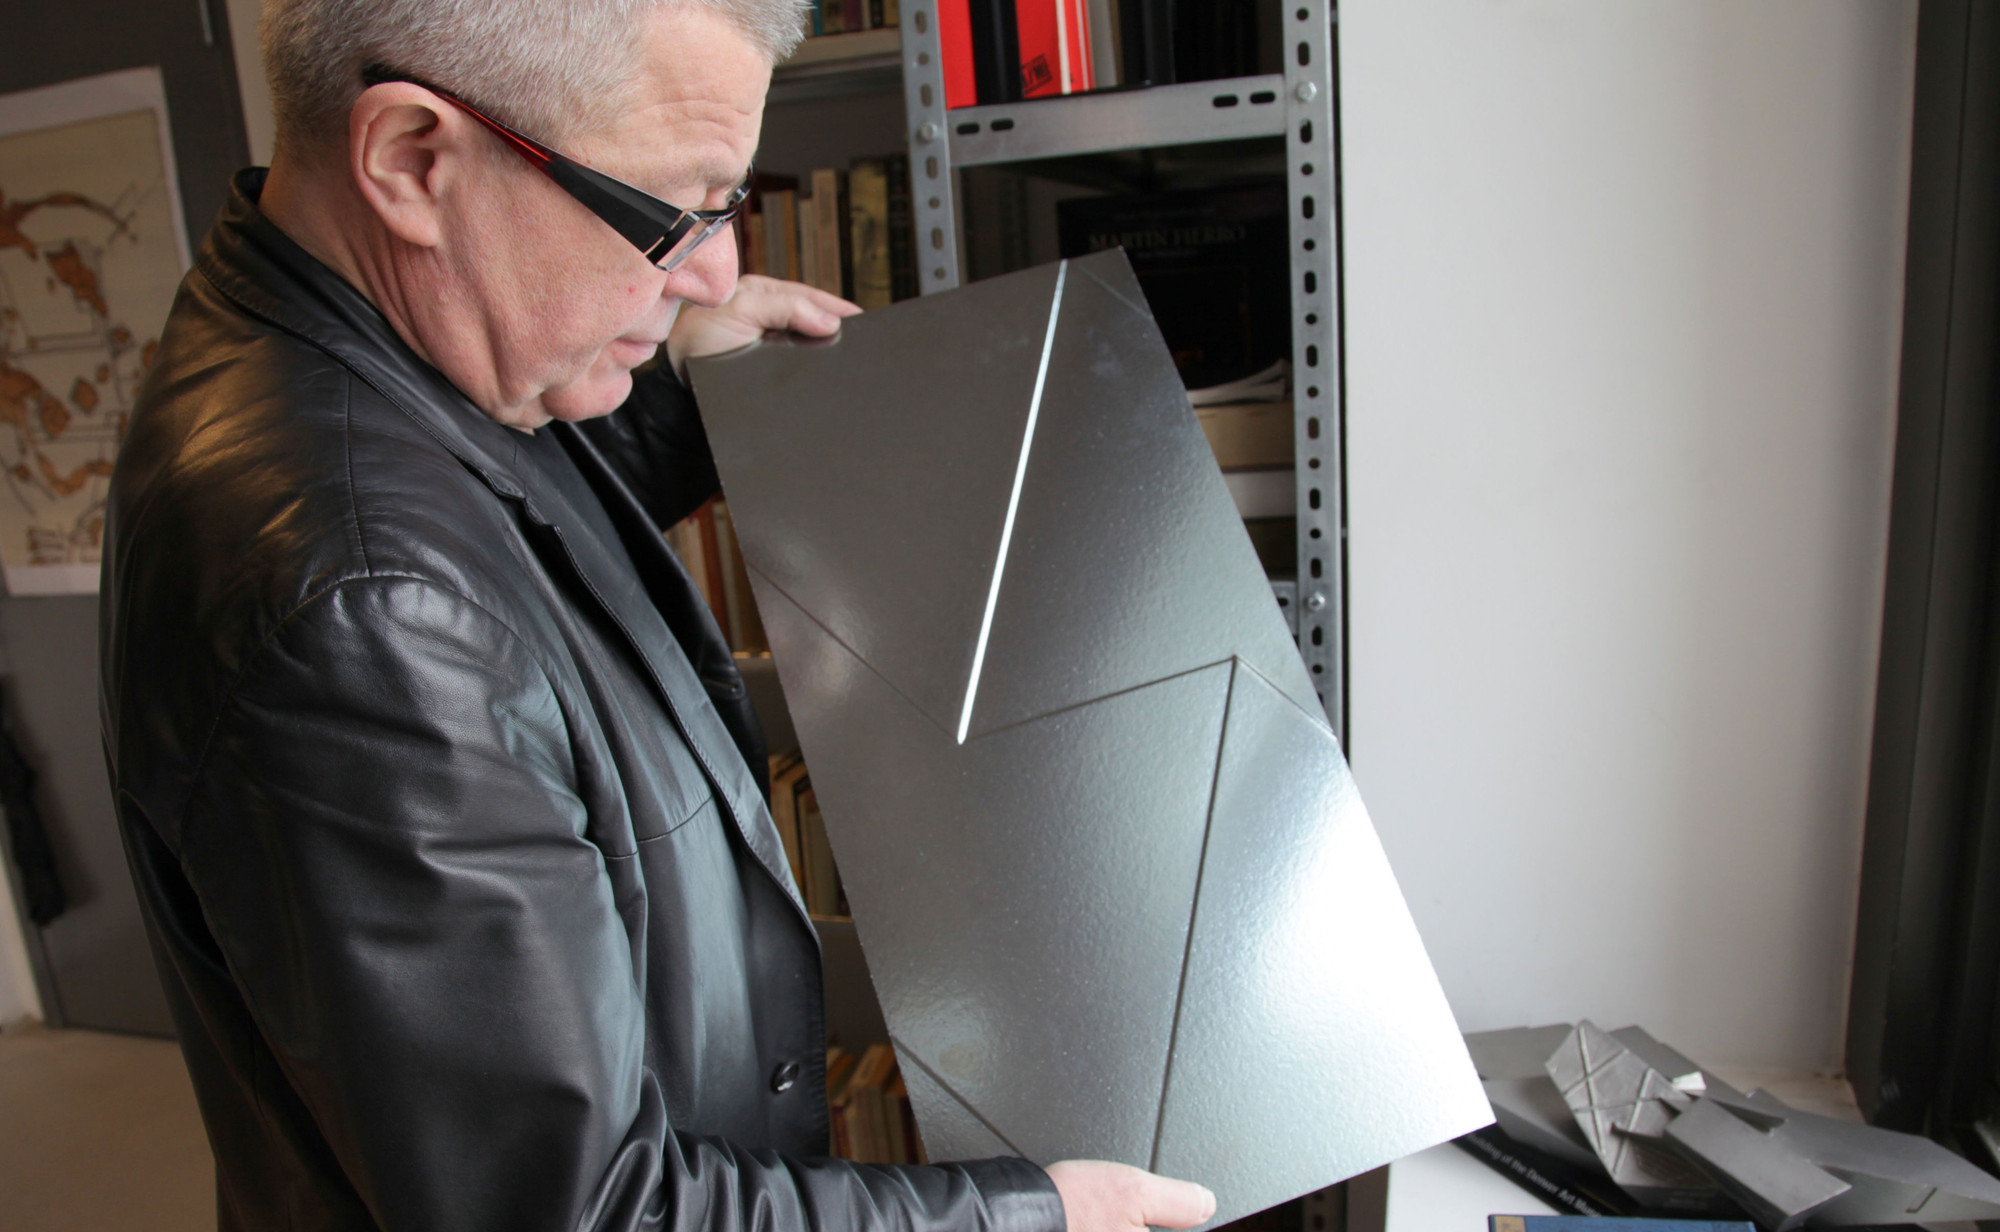 Daniel Libeskind on Italy, Design, & the State of Architecture Today, Daniel Libeskind in his New York office, holding up a panel of eco-friendly ceramic tiles the architect designed.. Image Courtesy of Lana Barkin